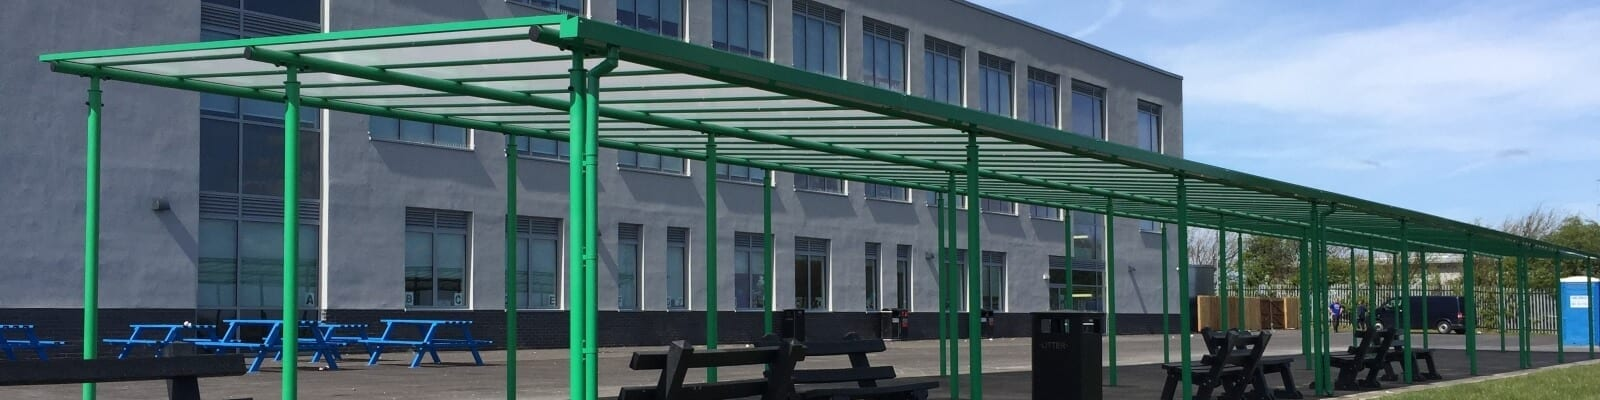 Green canopy we designed for Blackpool Aspire Academy